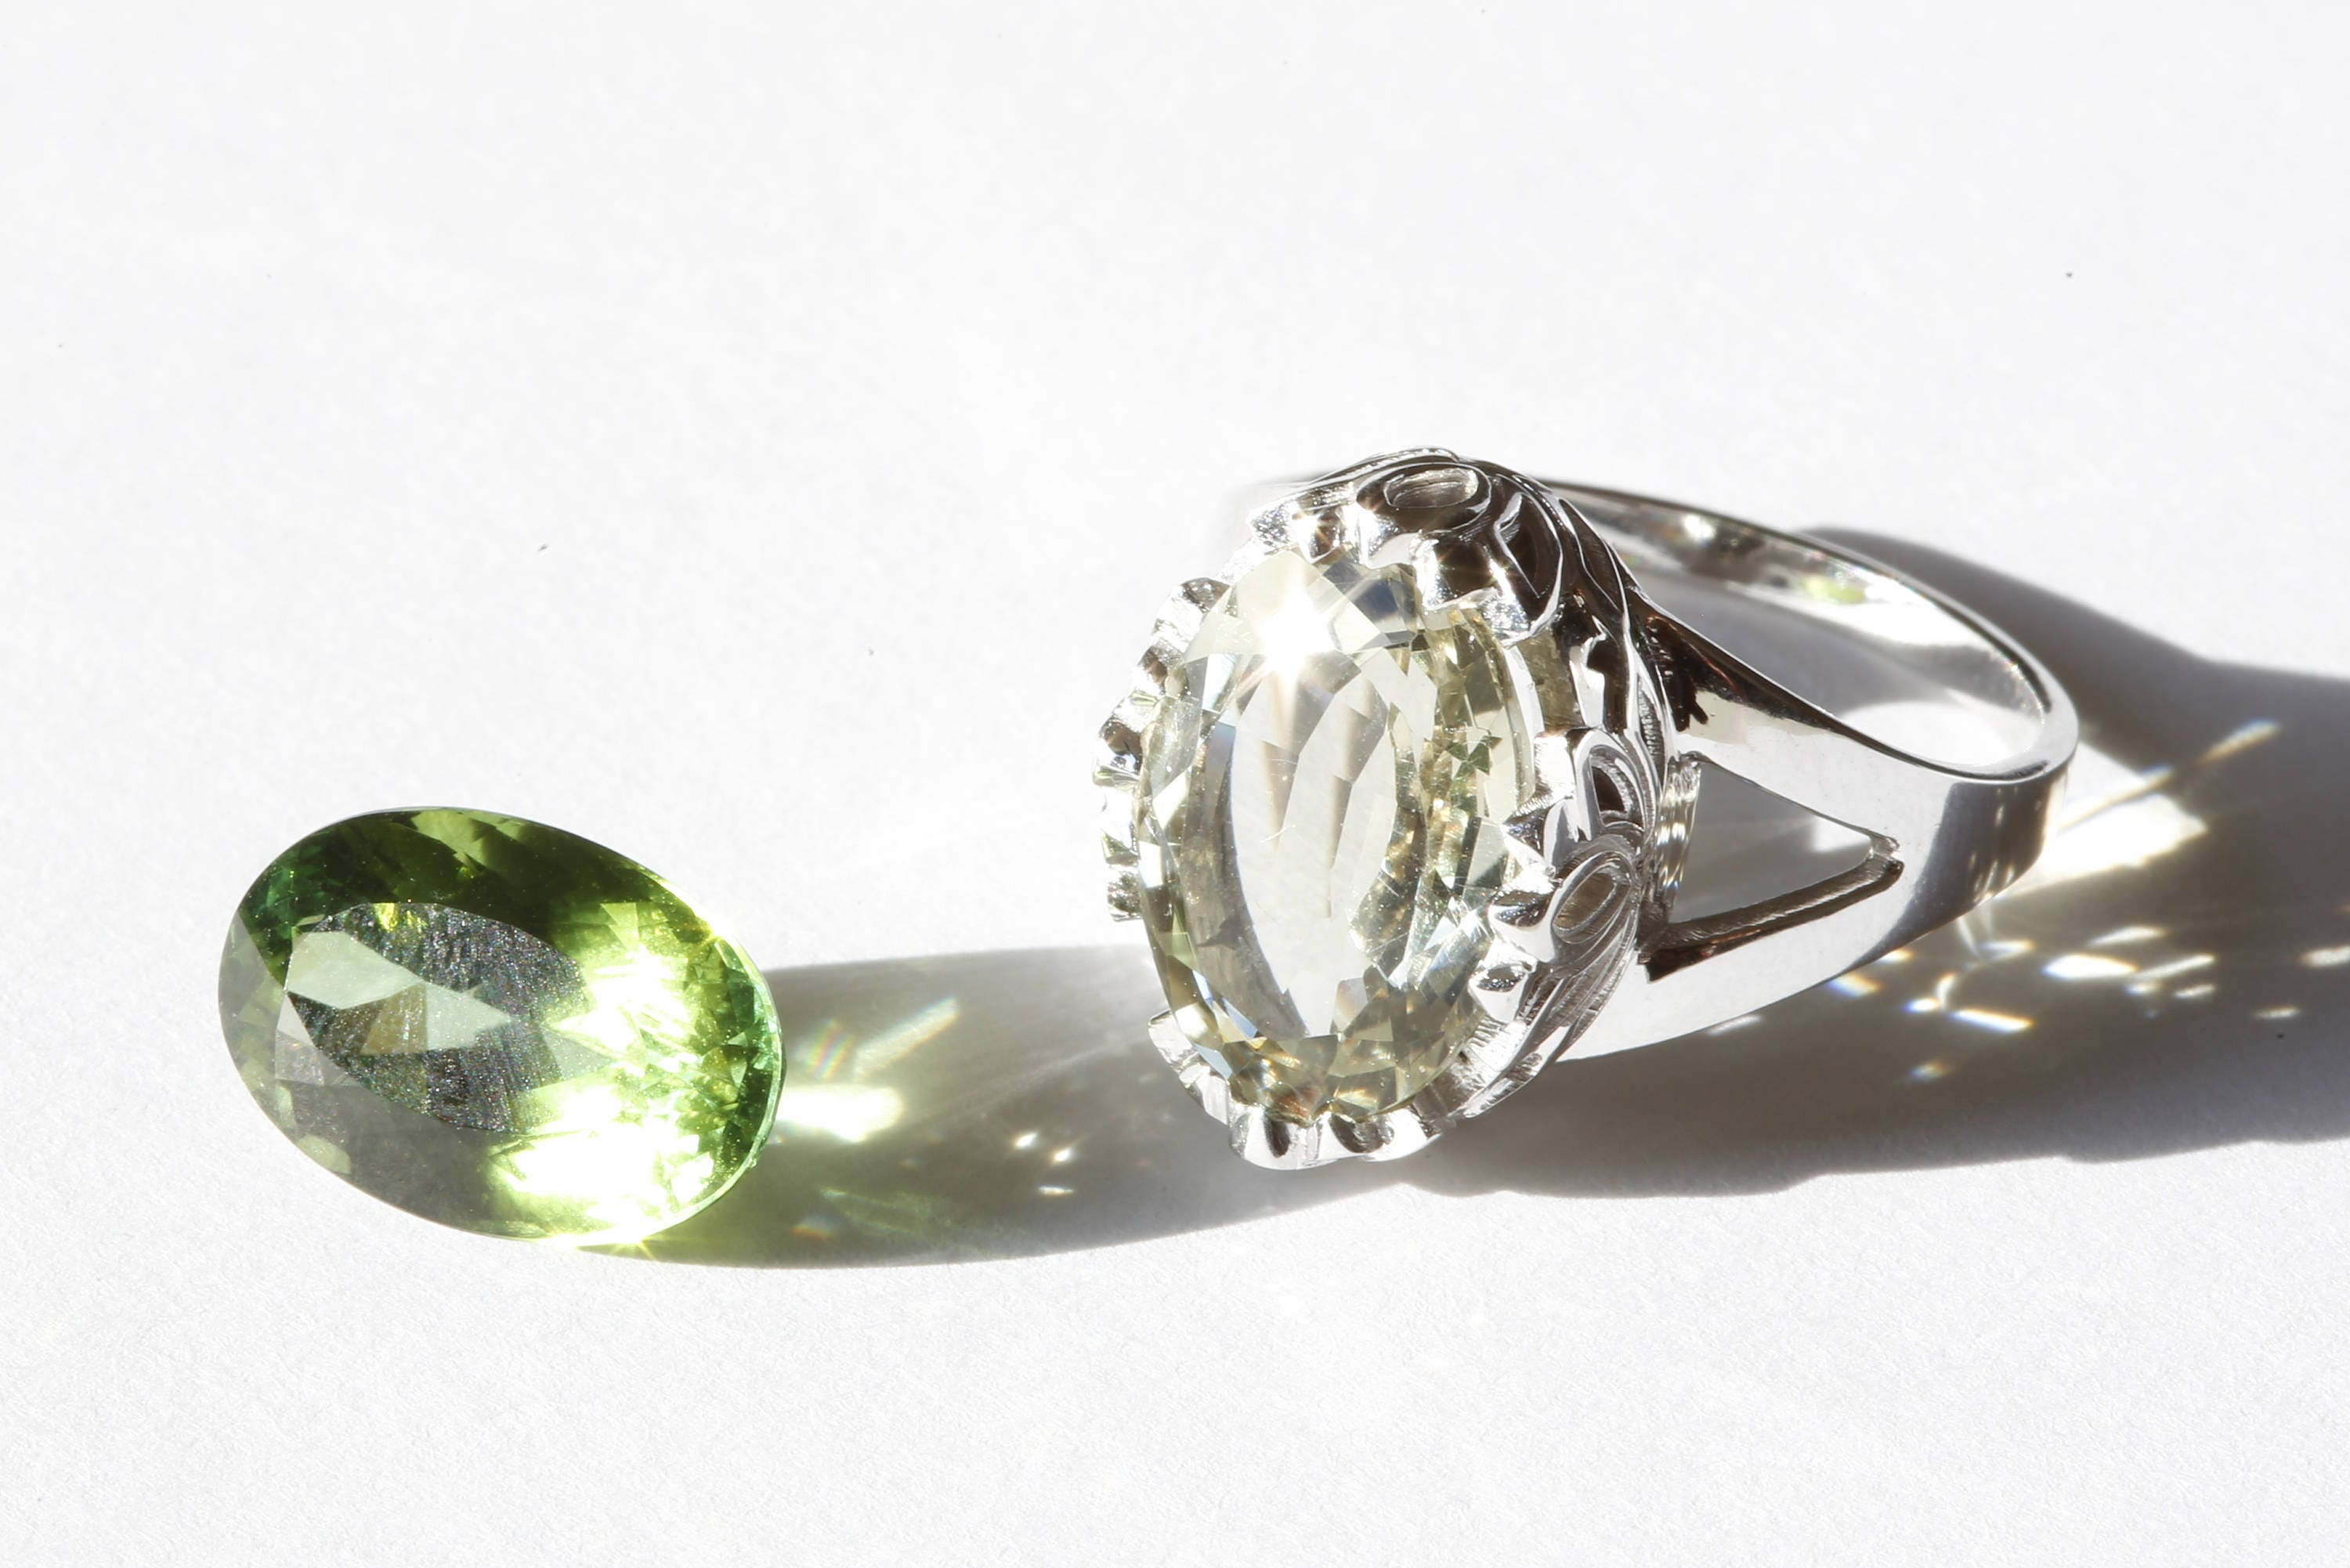 uk los diamond rmsl fine angeles rings green maya london mosaic tourmaline modern stone ring leaf gtd jewellery